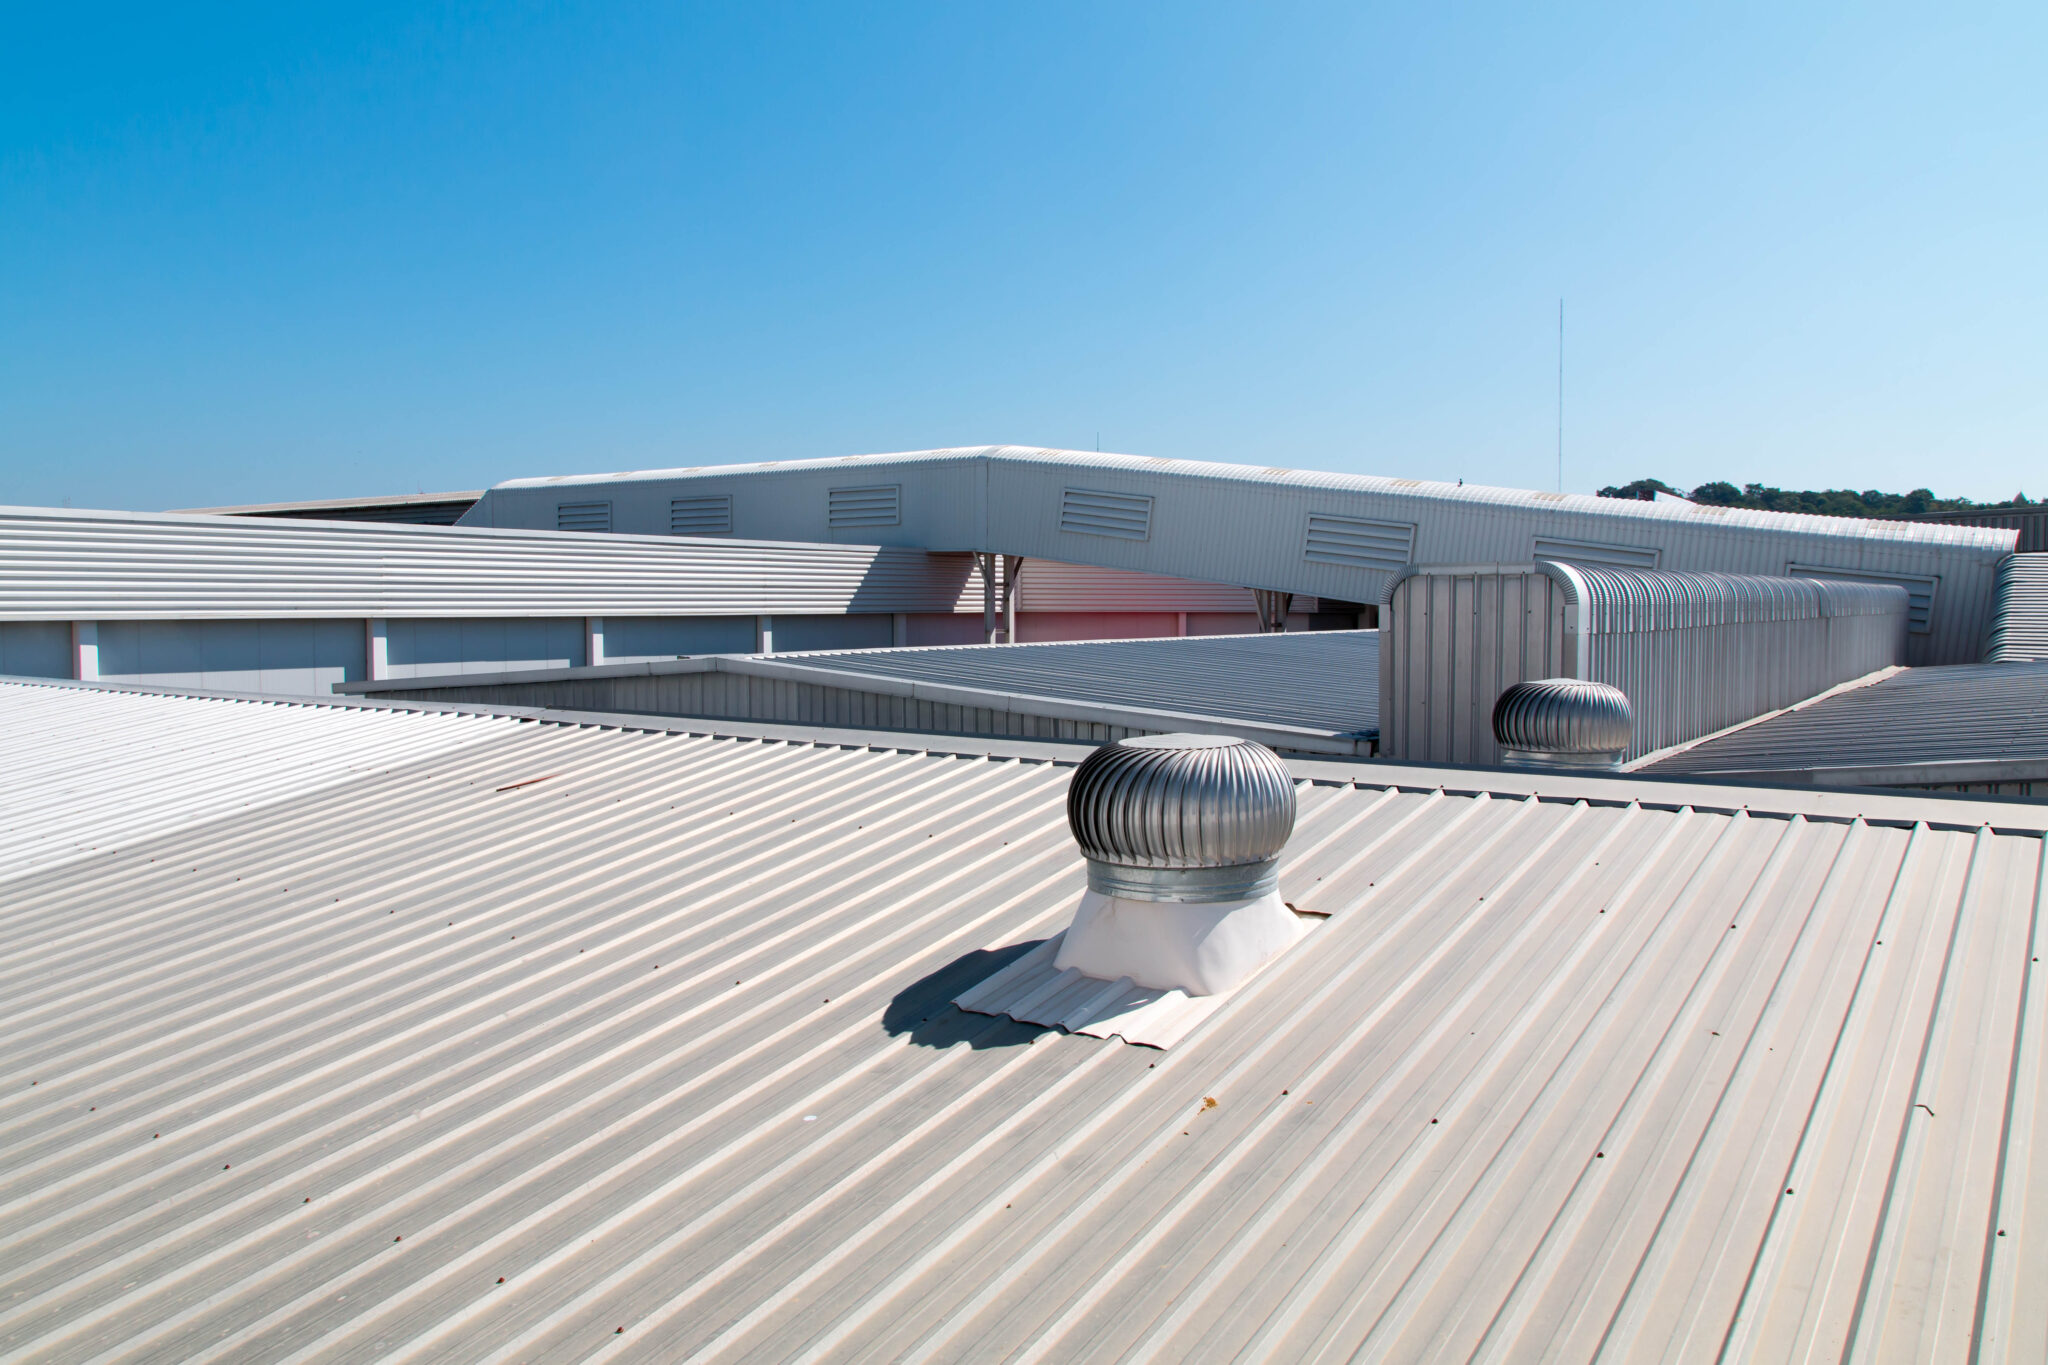 Commercial Site Maintenance with Gutter-Vac